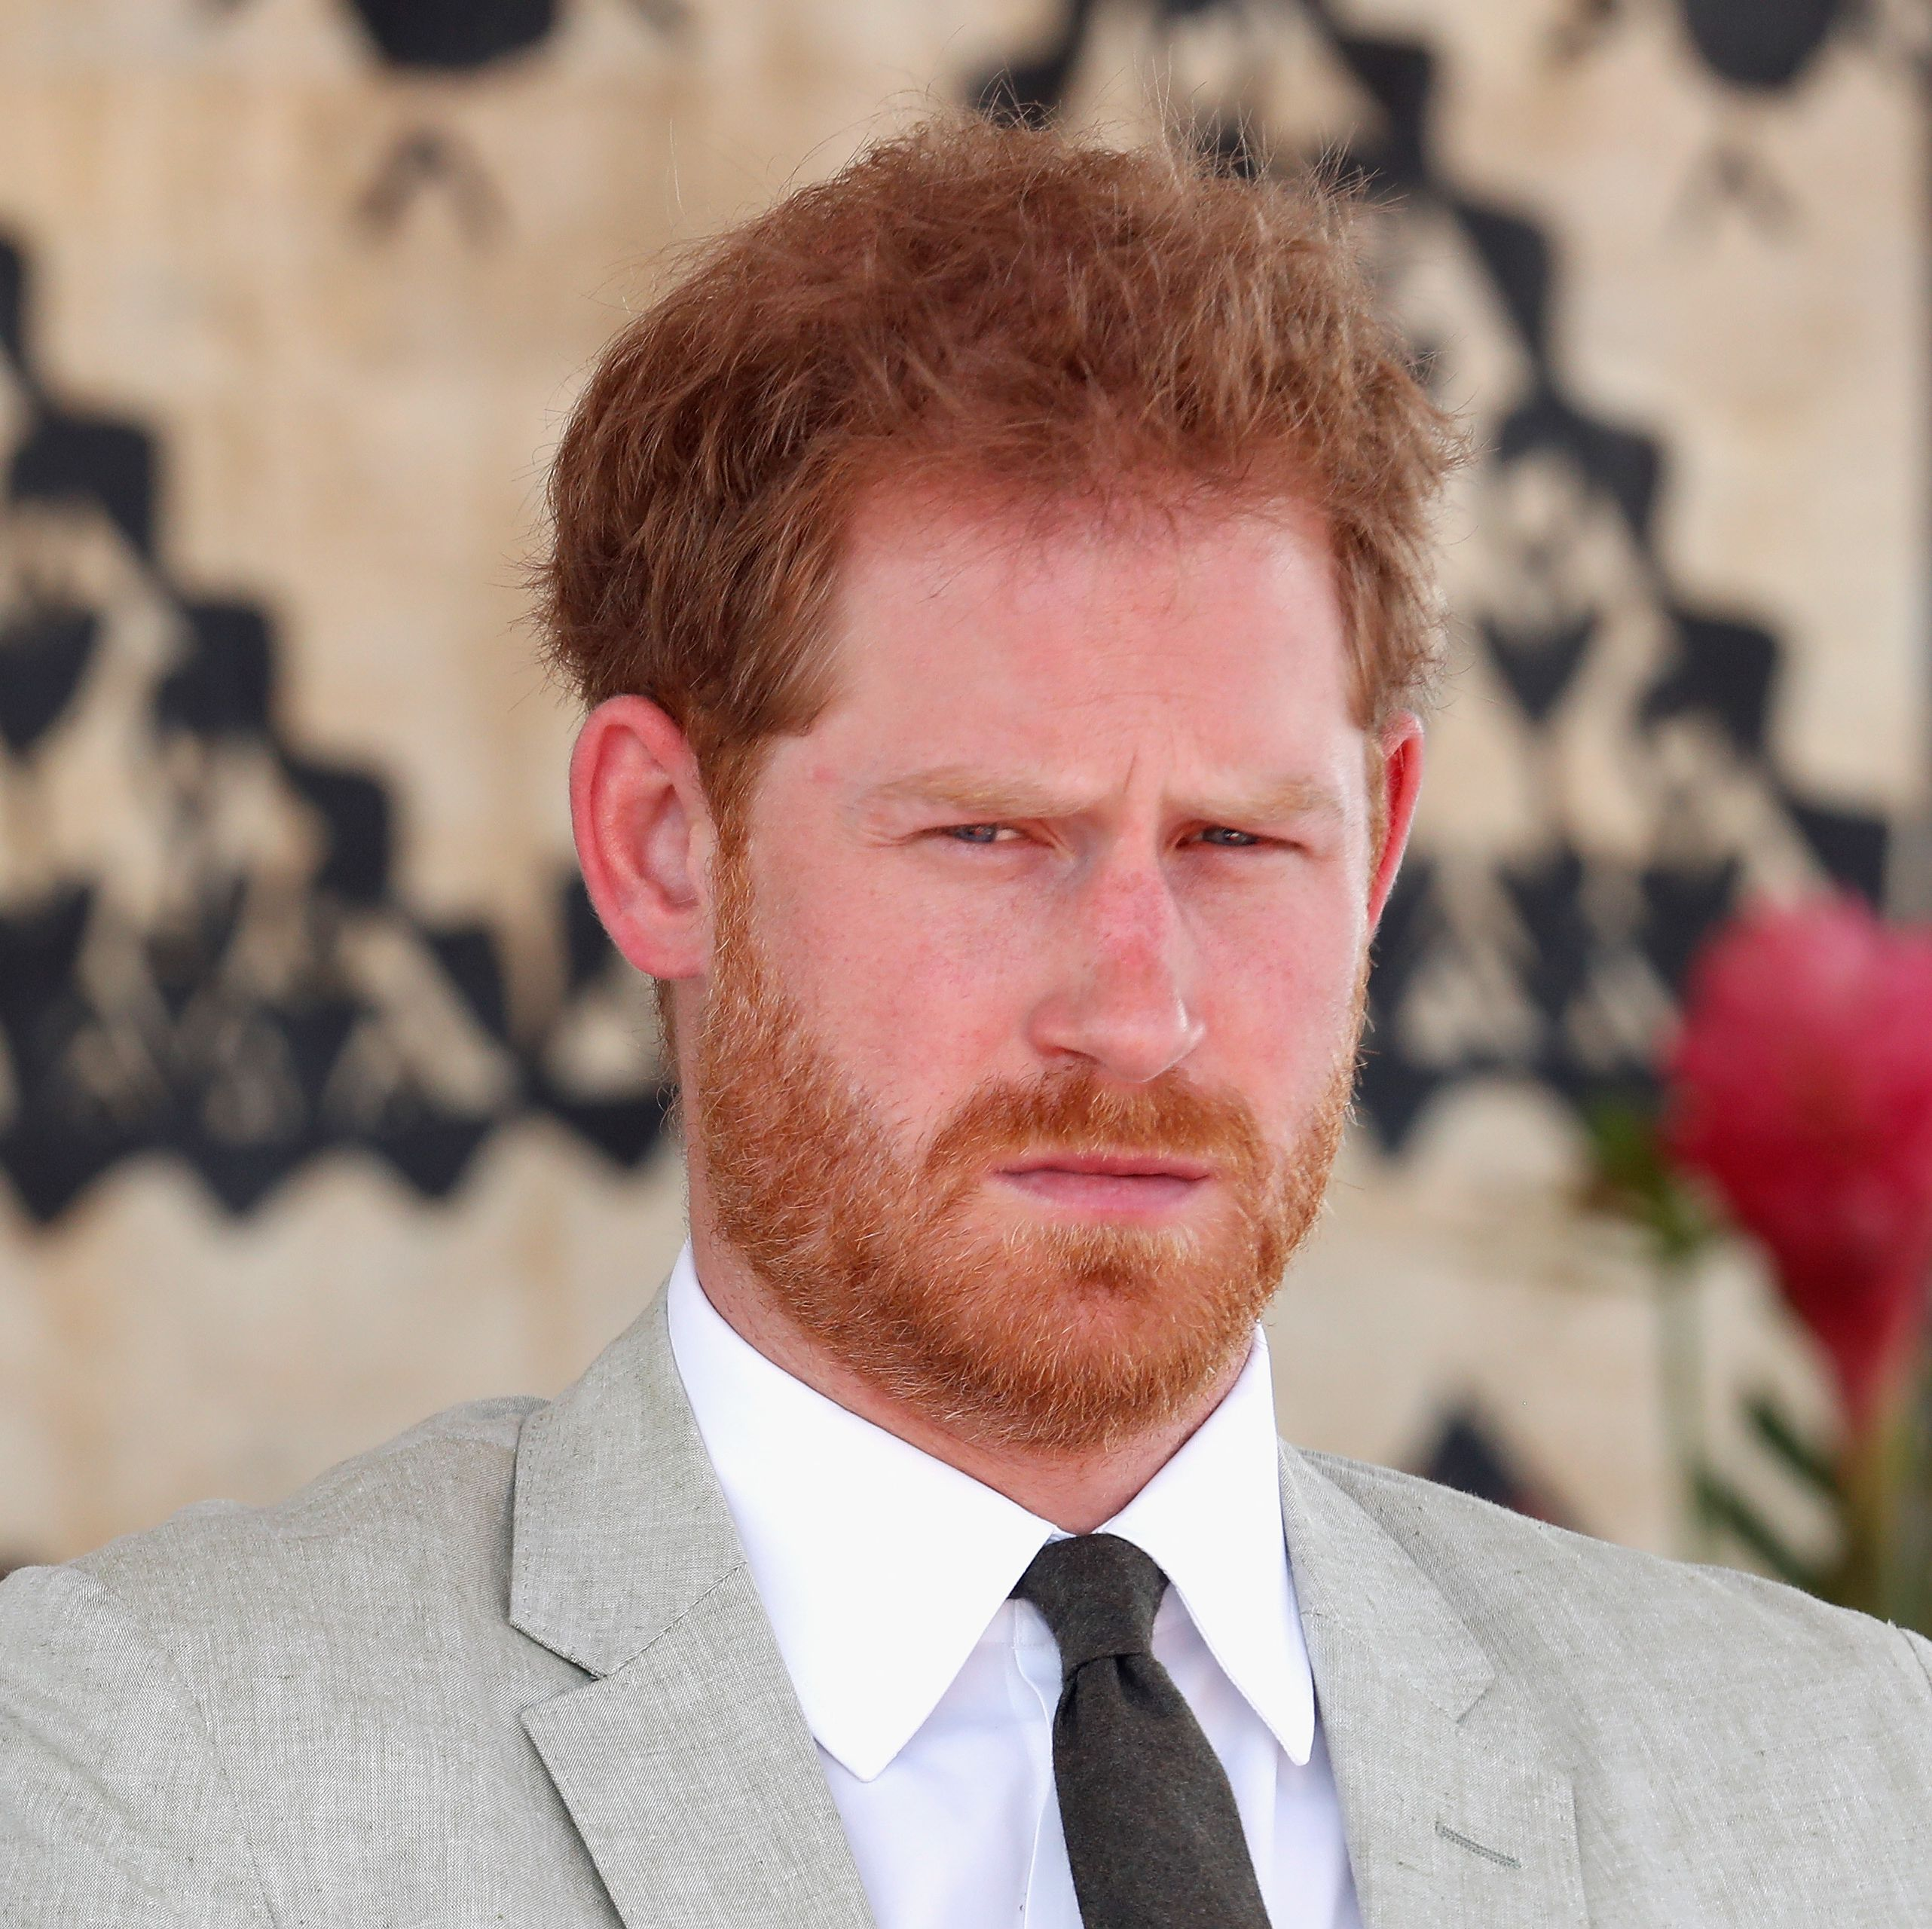 prince-harry-duke-of-cambridge-attend-the-unveiling-of-the-news-photo-1053237396-1543415730.jpg?crop=0.709xw:1.00xh;0.291xw,0&resize=480:*